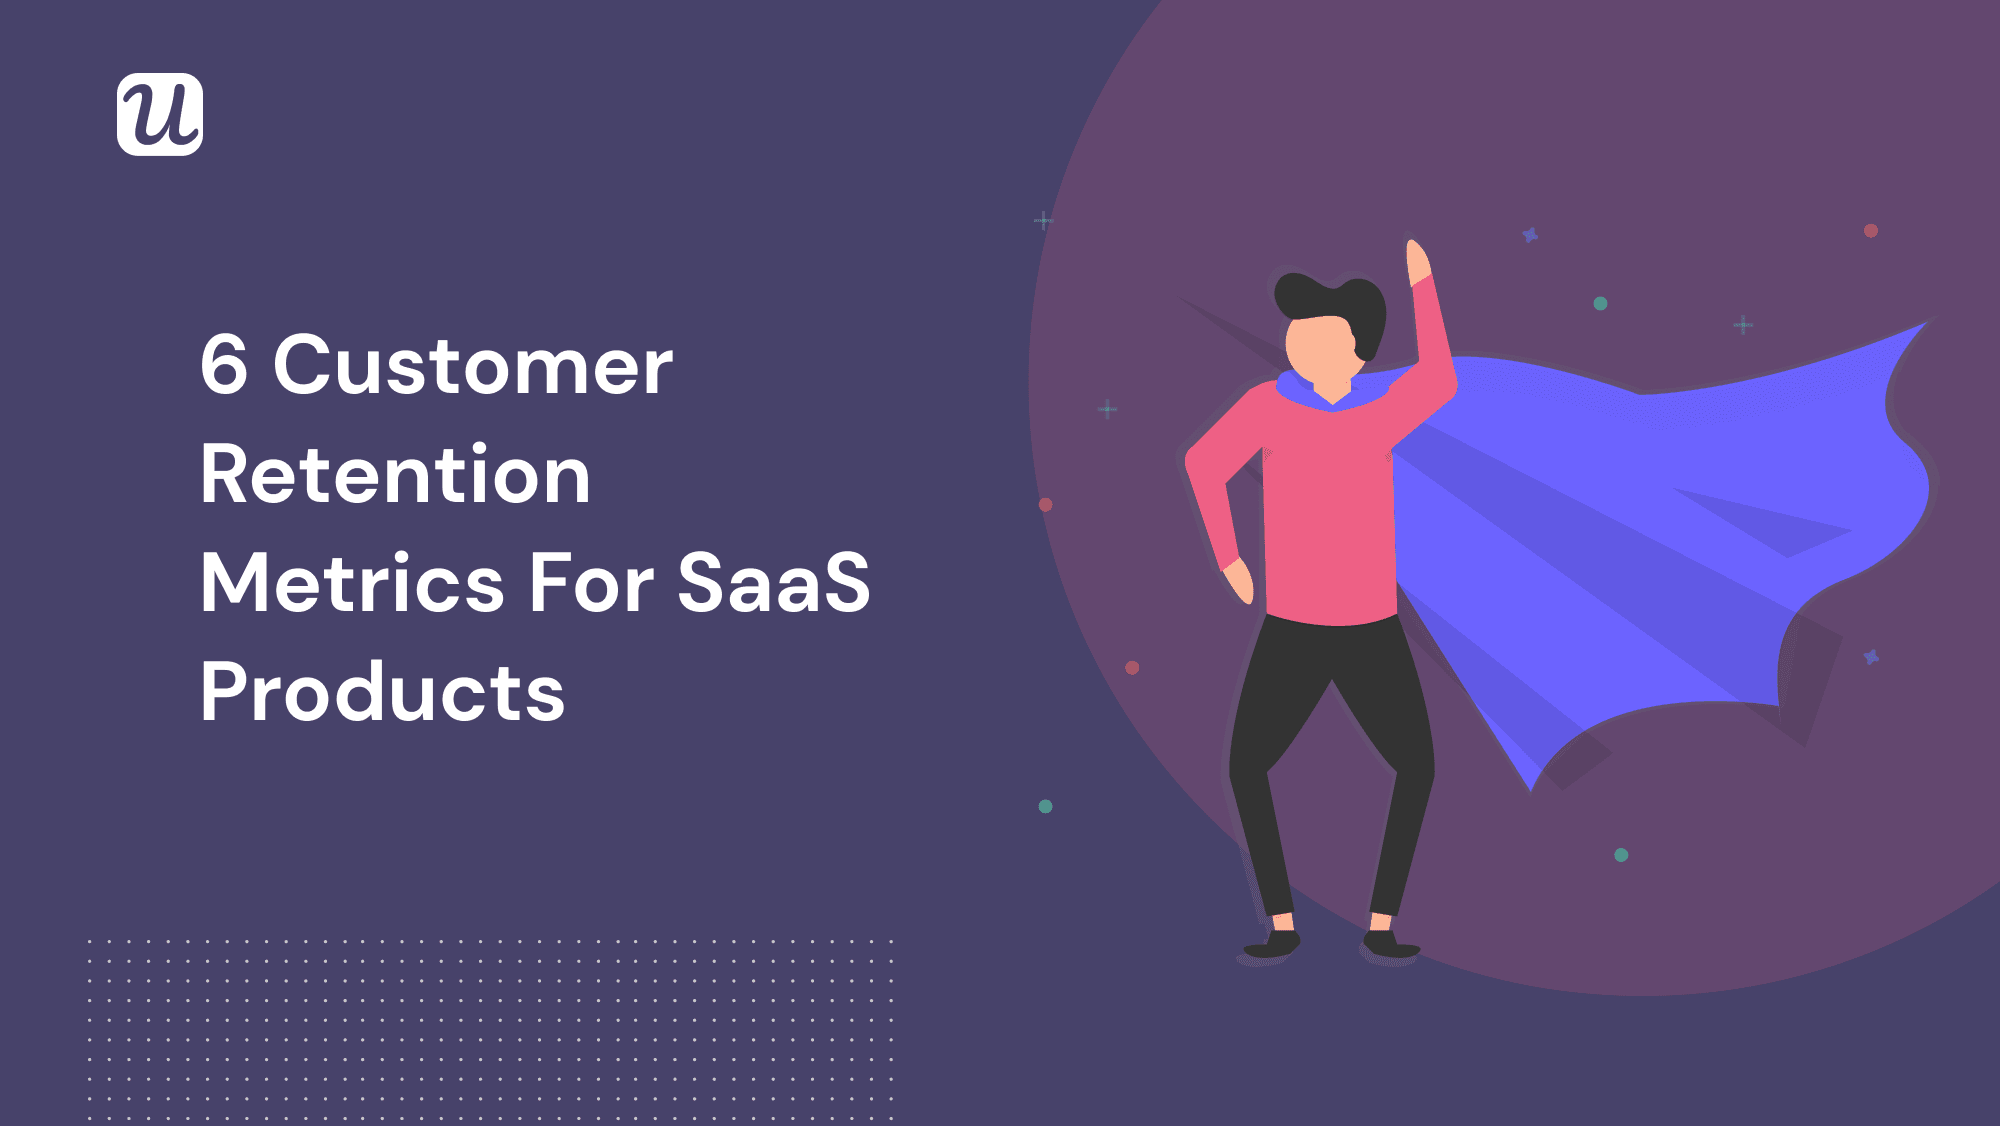 6 Customer Retention Rate and Related Retention Metrics for SaaS Products